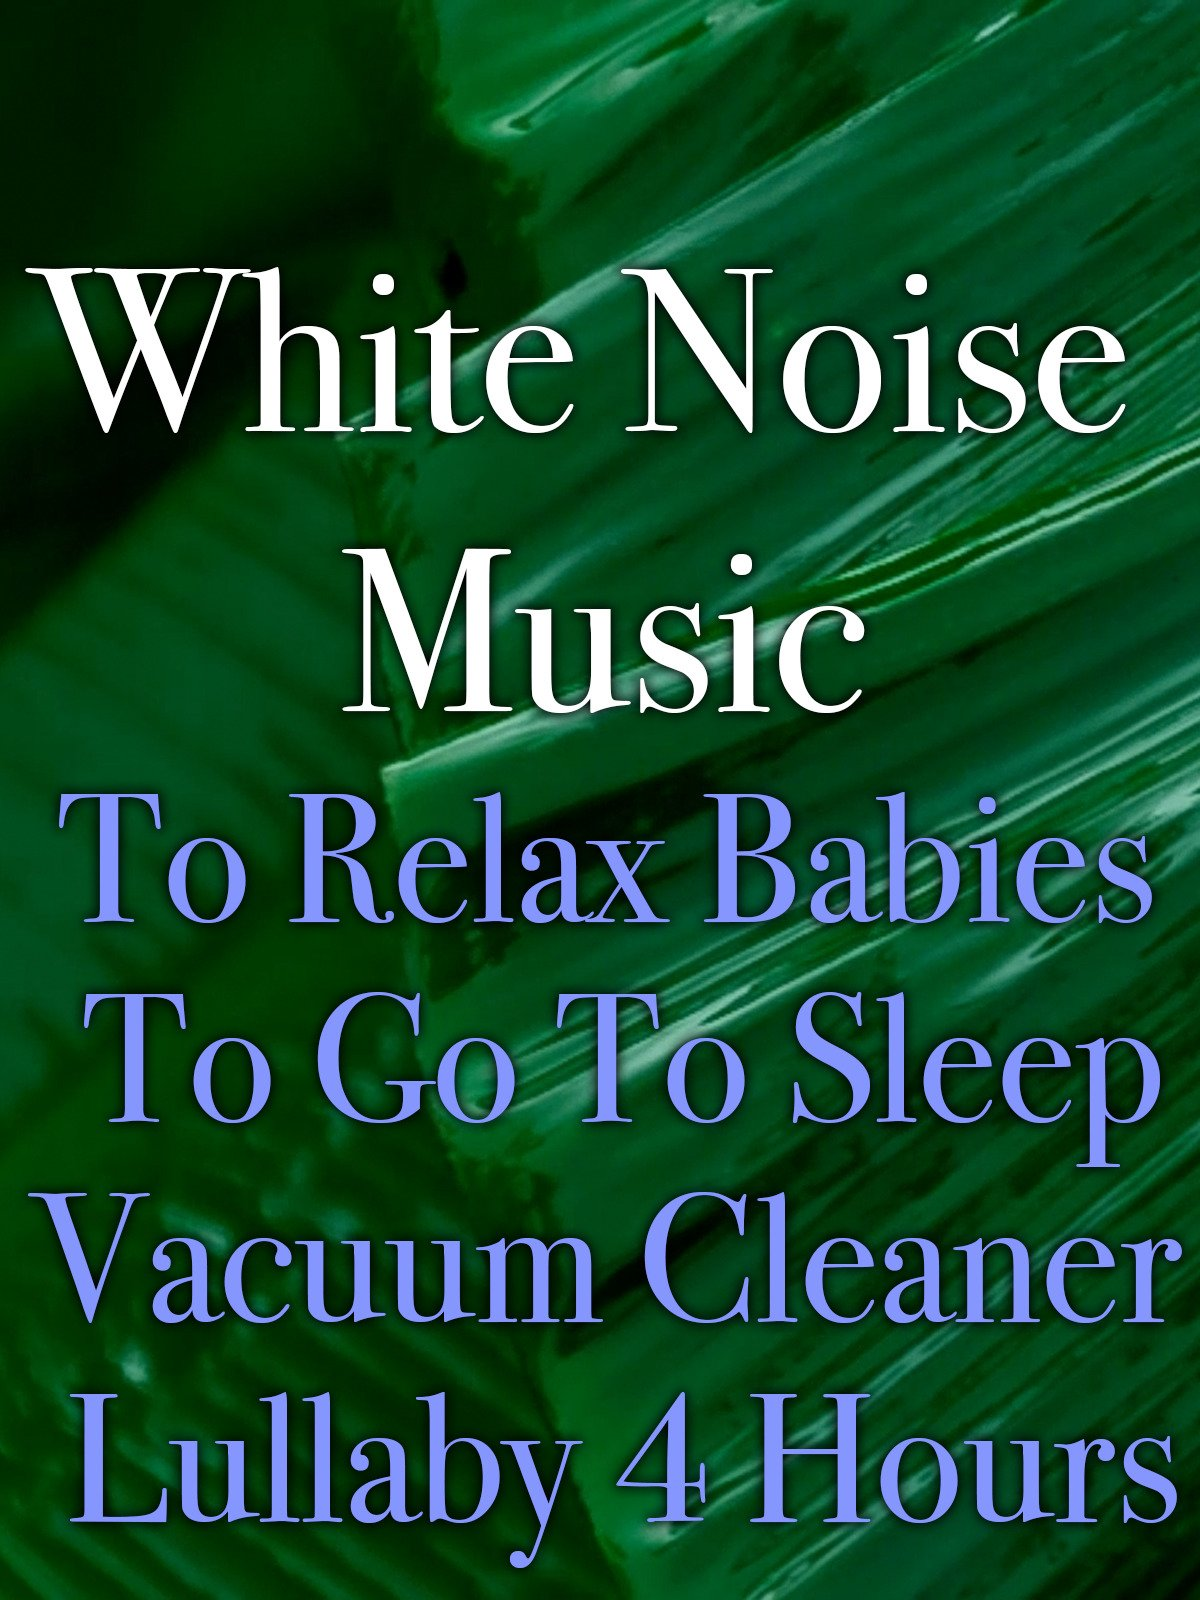 White Noise Music To Relax Babies To Go To Sleep Vacuum Cleaner Lullaby 4 Hours